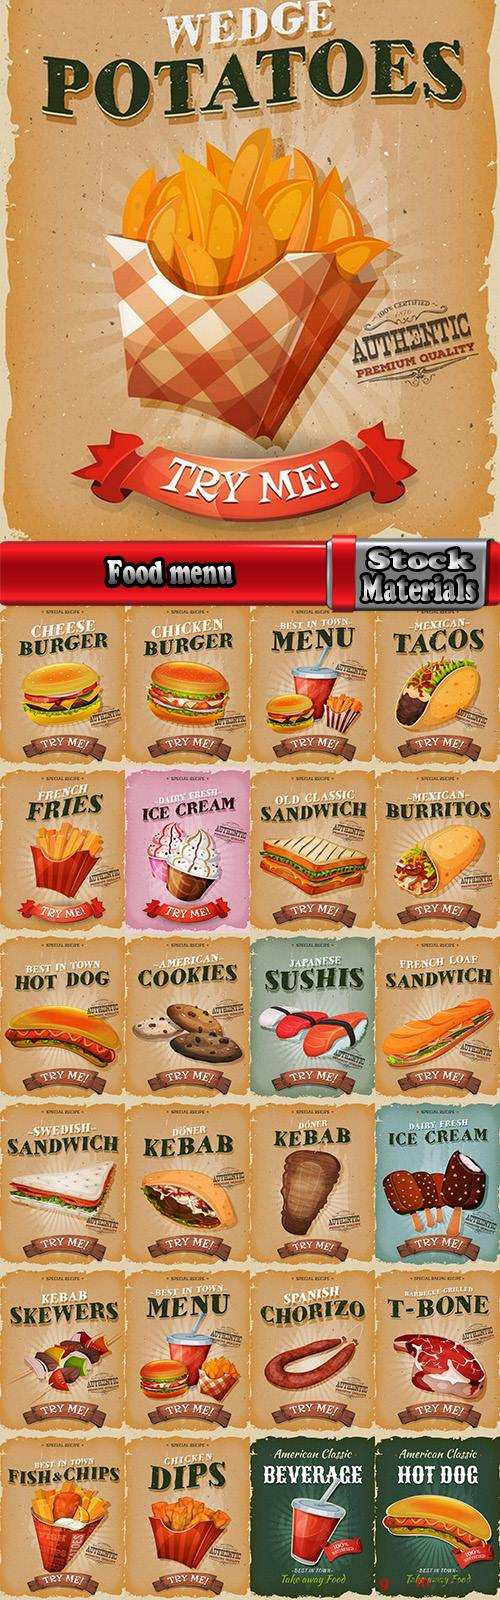 Food menu barbecue burger hot dog drink soda flyer banner 25 EPS